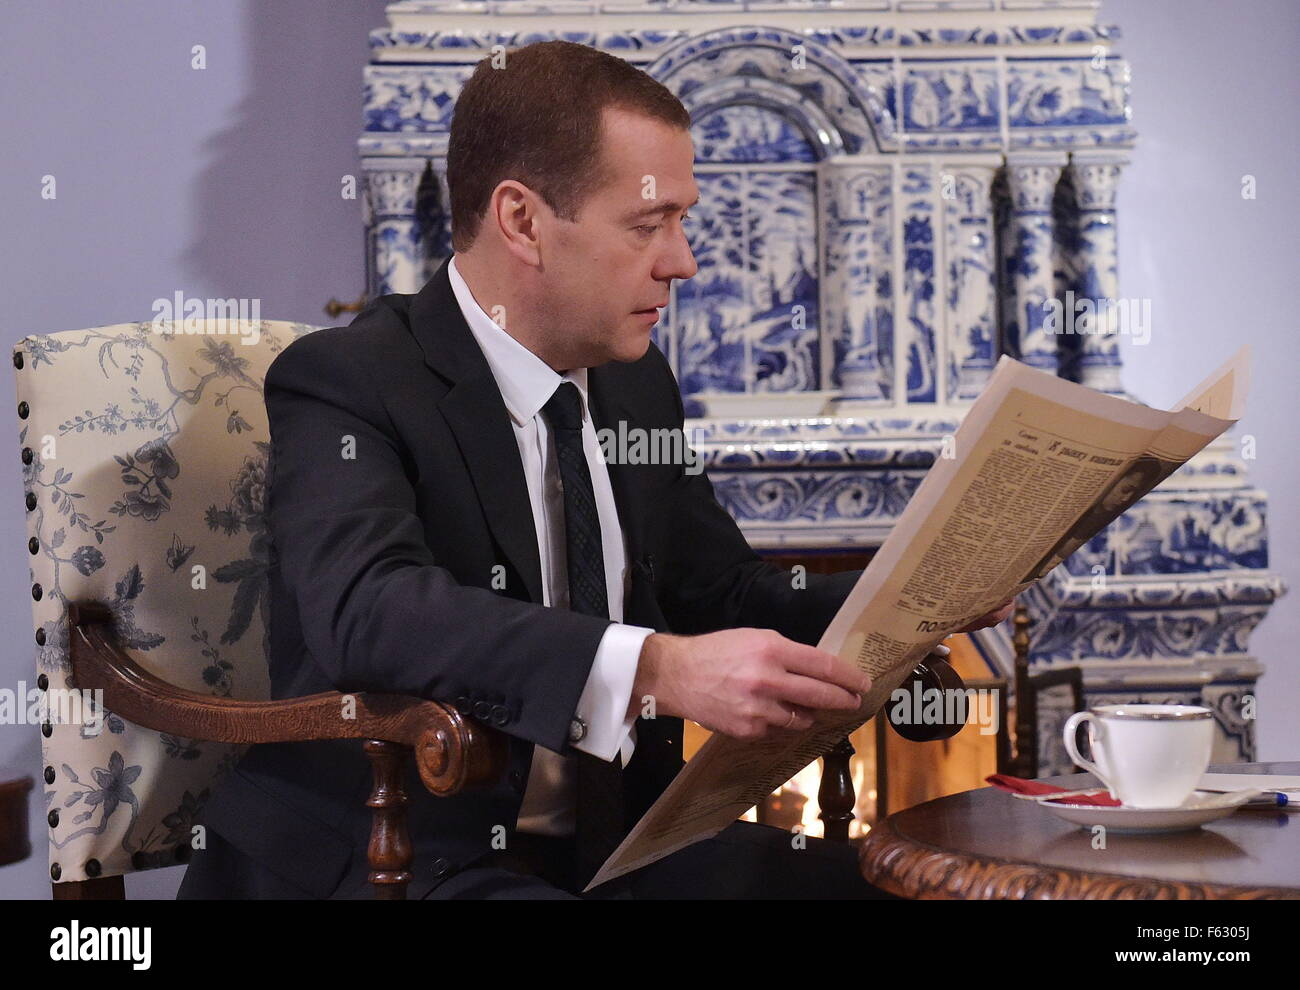 Moscow Region, Russia. 9th Nov, 2015. Russia's Prime Minister Dmitry Medvedev during an interview with the Rossiyskaya - Stock Image